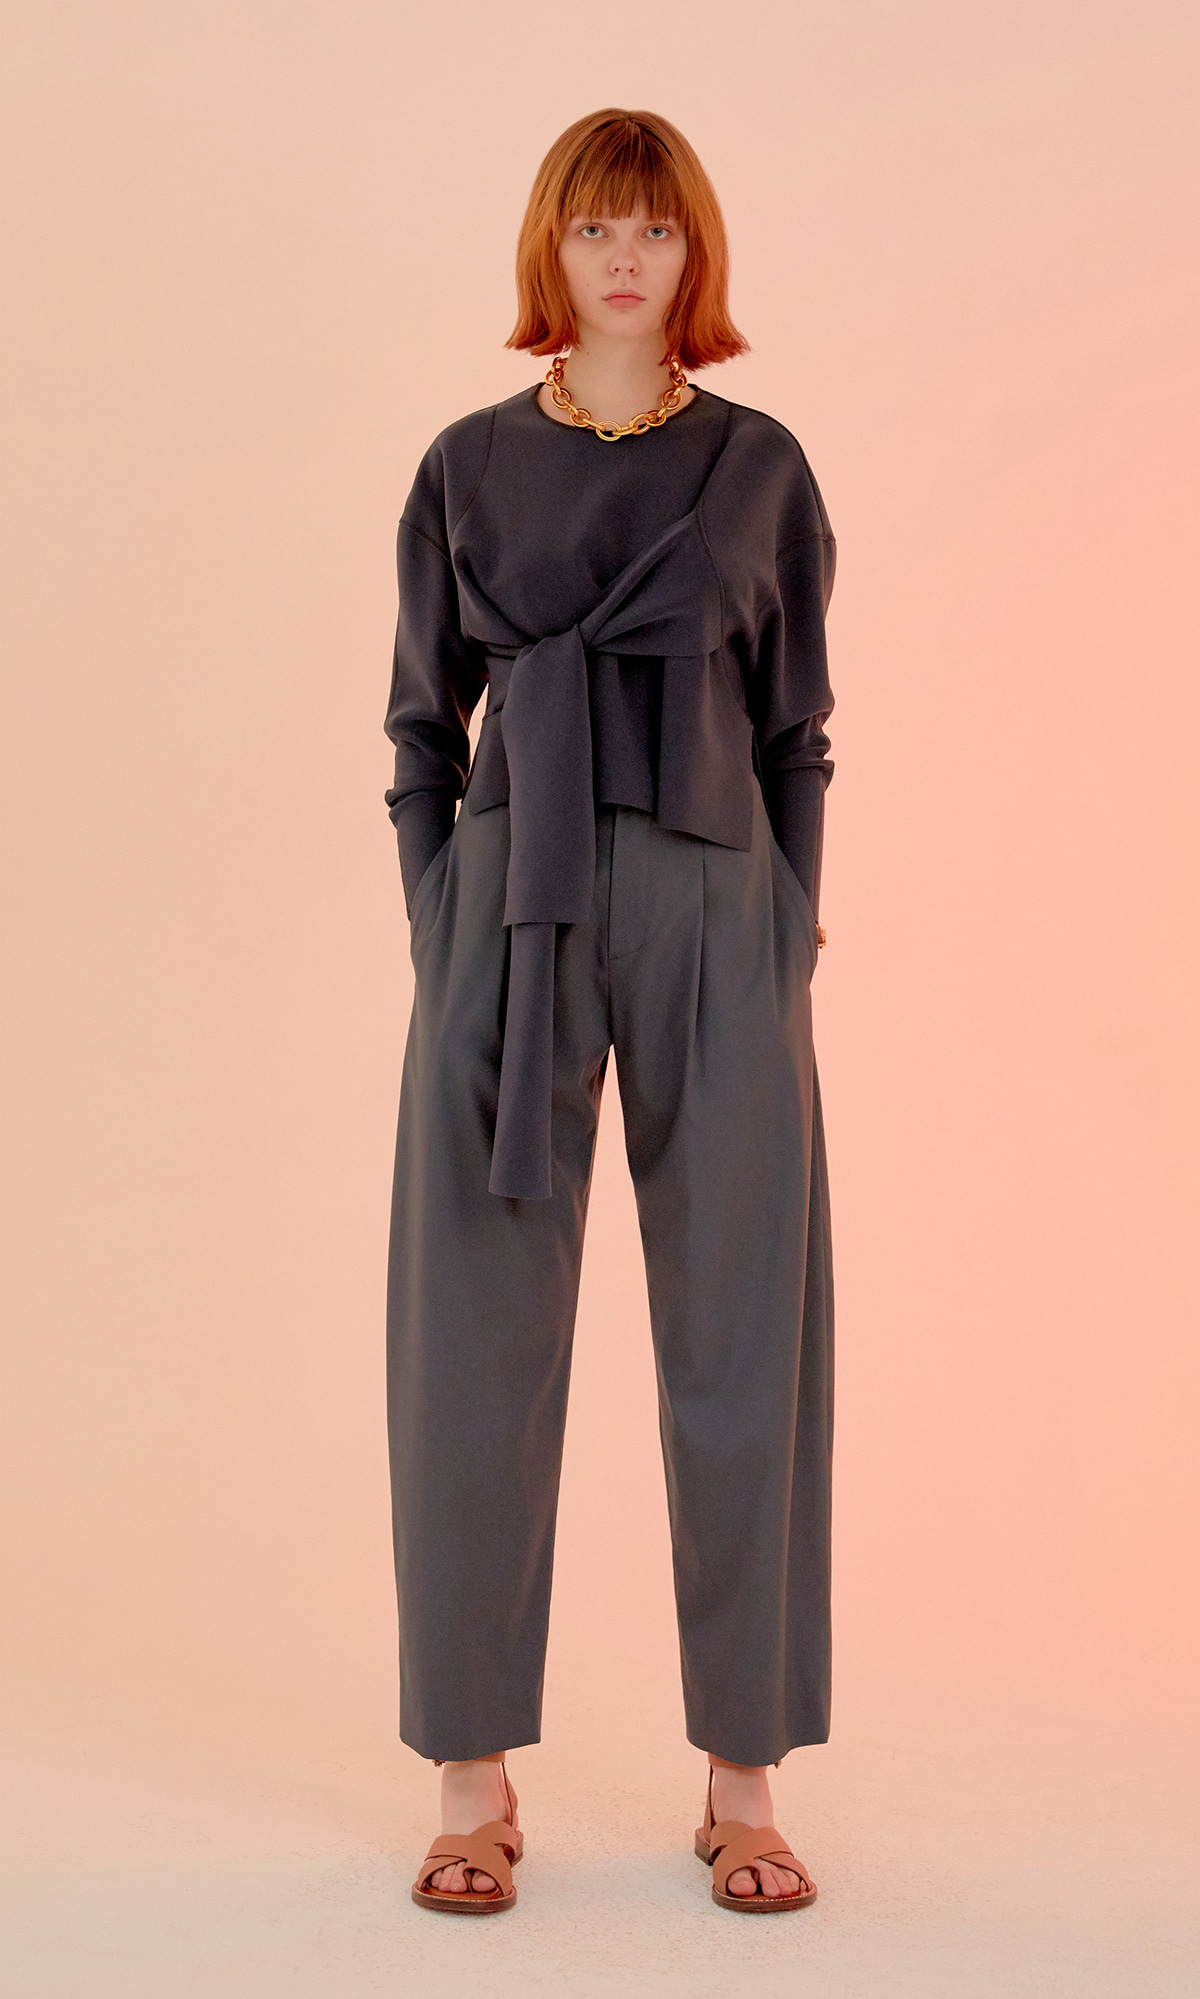 Foren Round Trouser_Charcoal